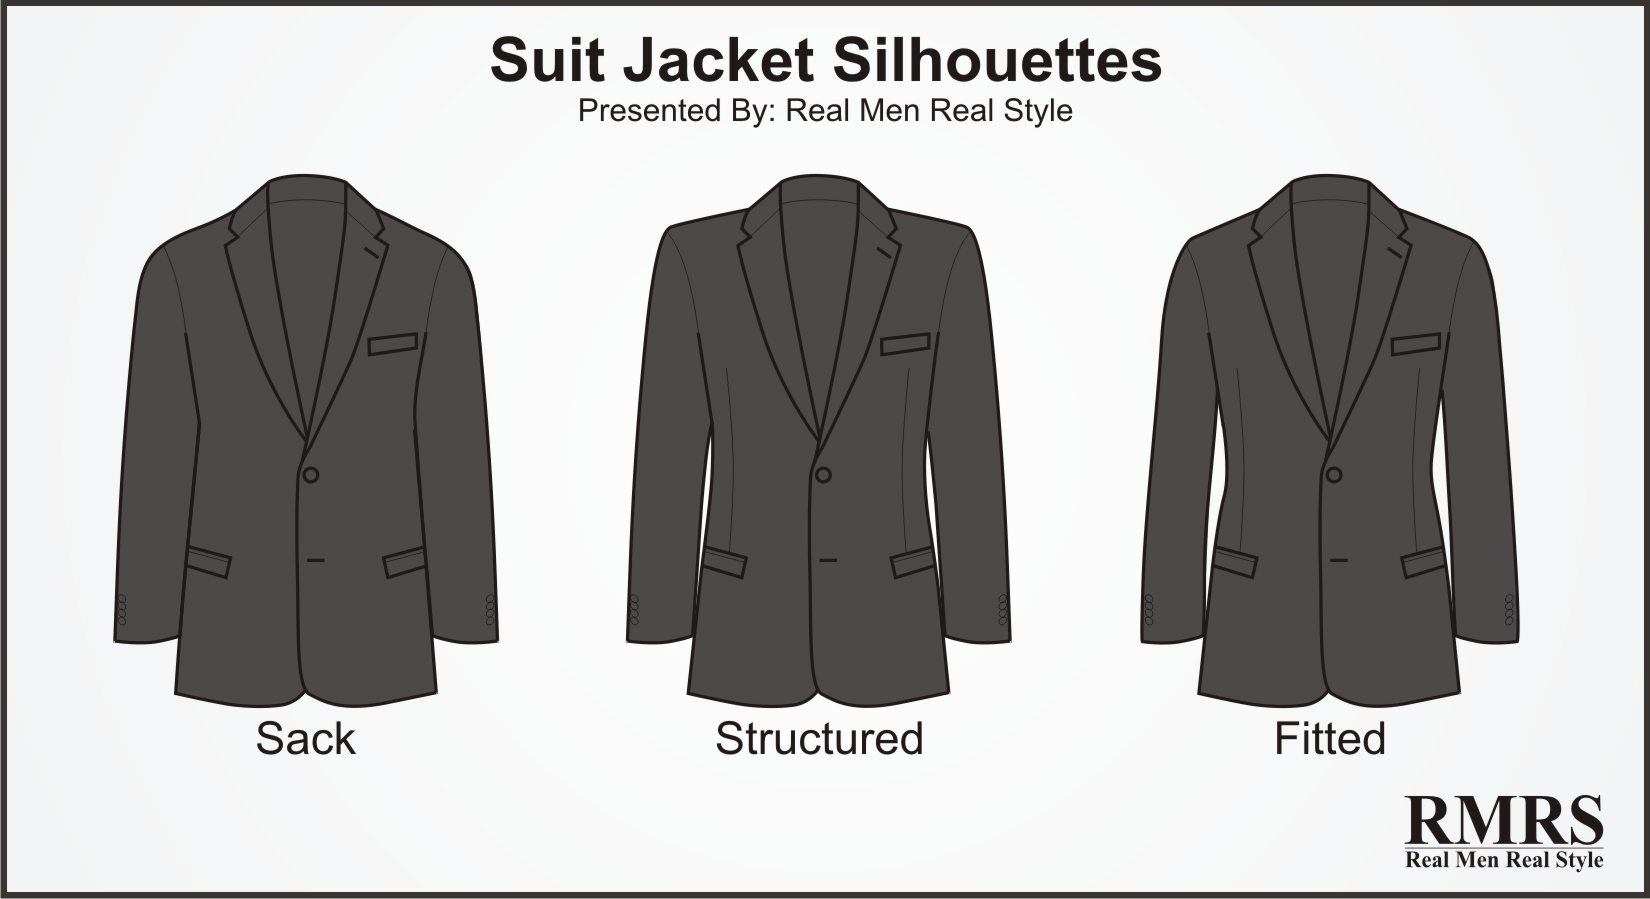 39d183ea 10 Suit Jacket Style Details Men Should Know | Suit Jackets ...